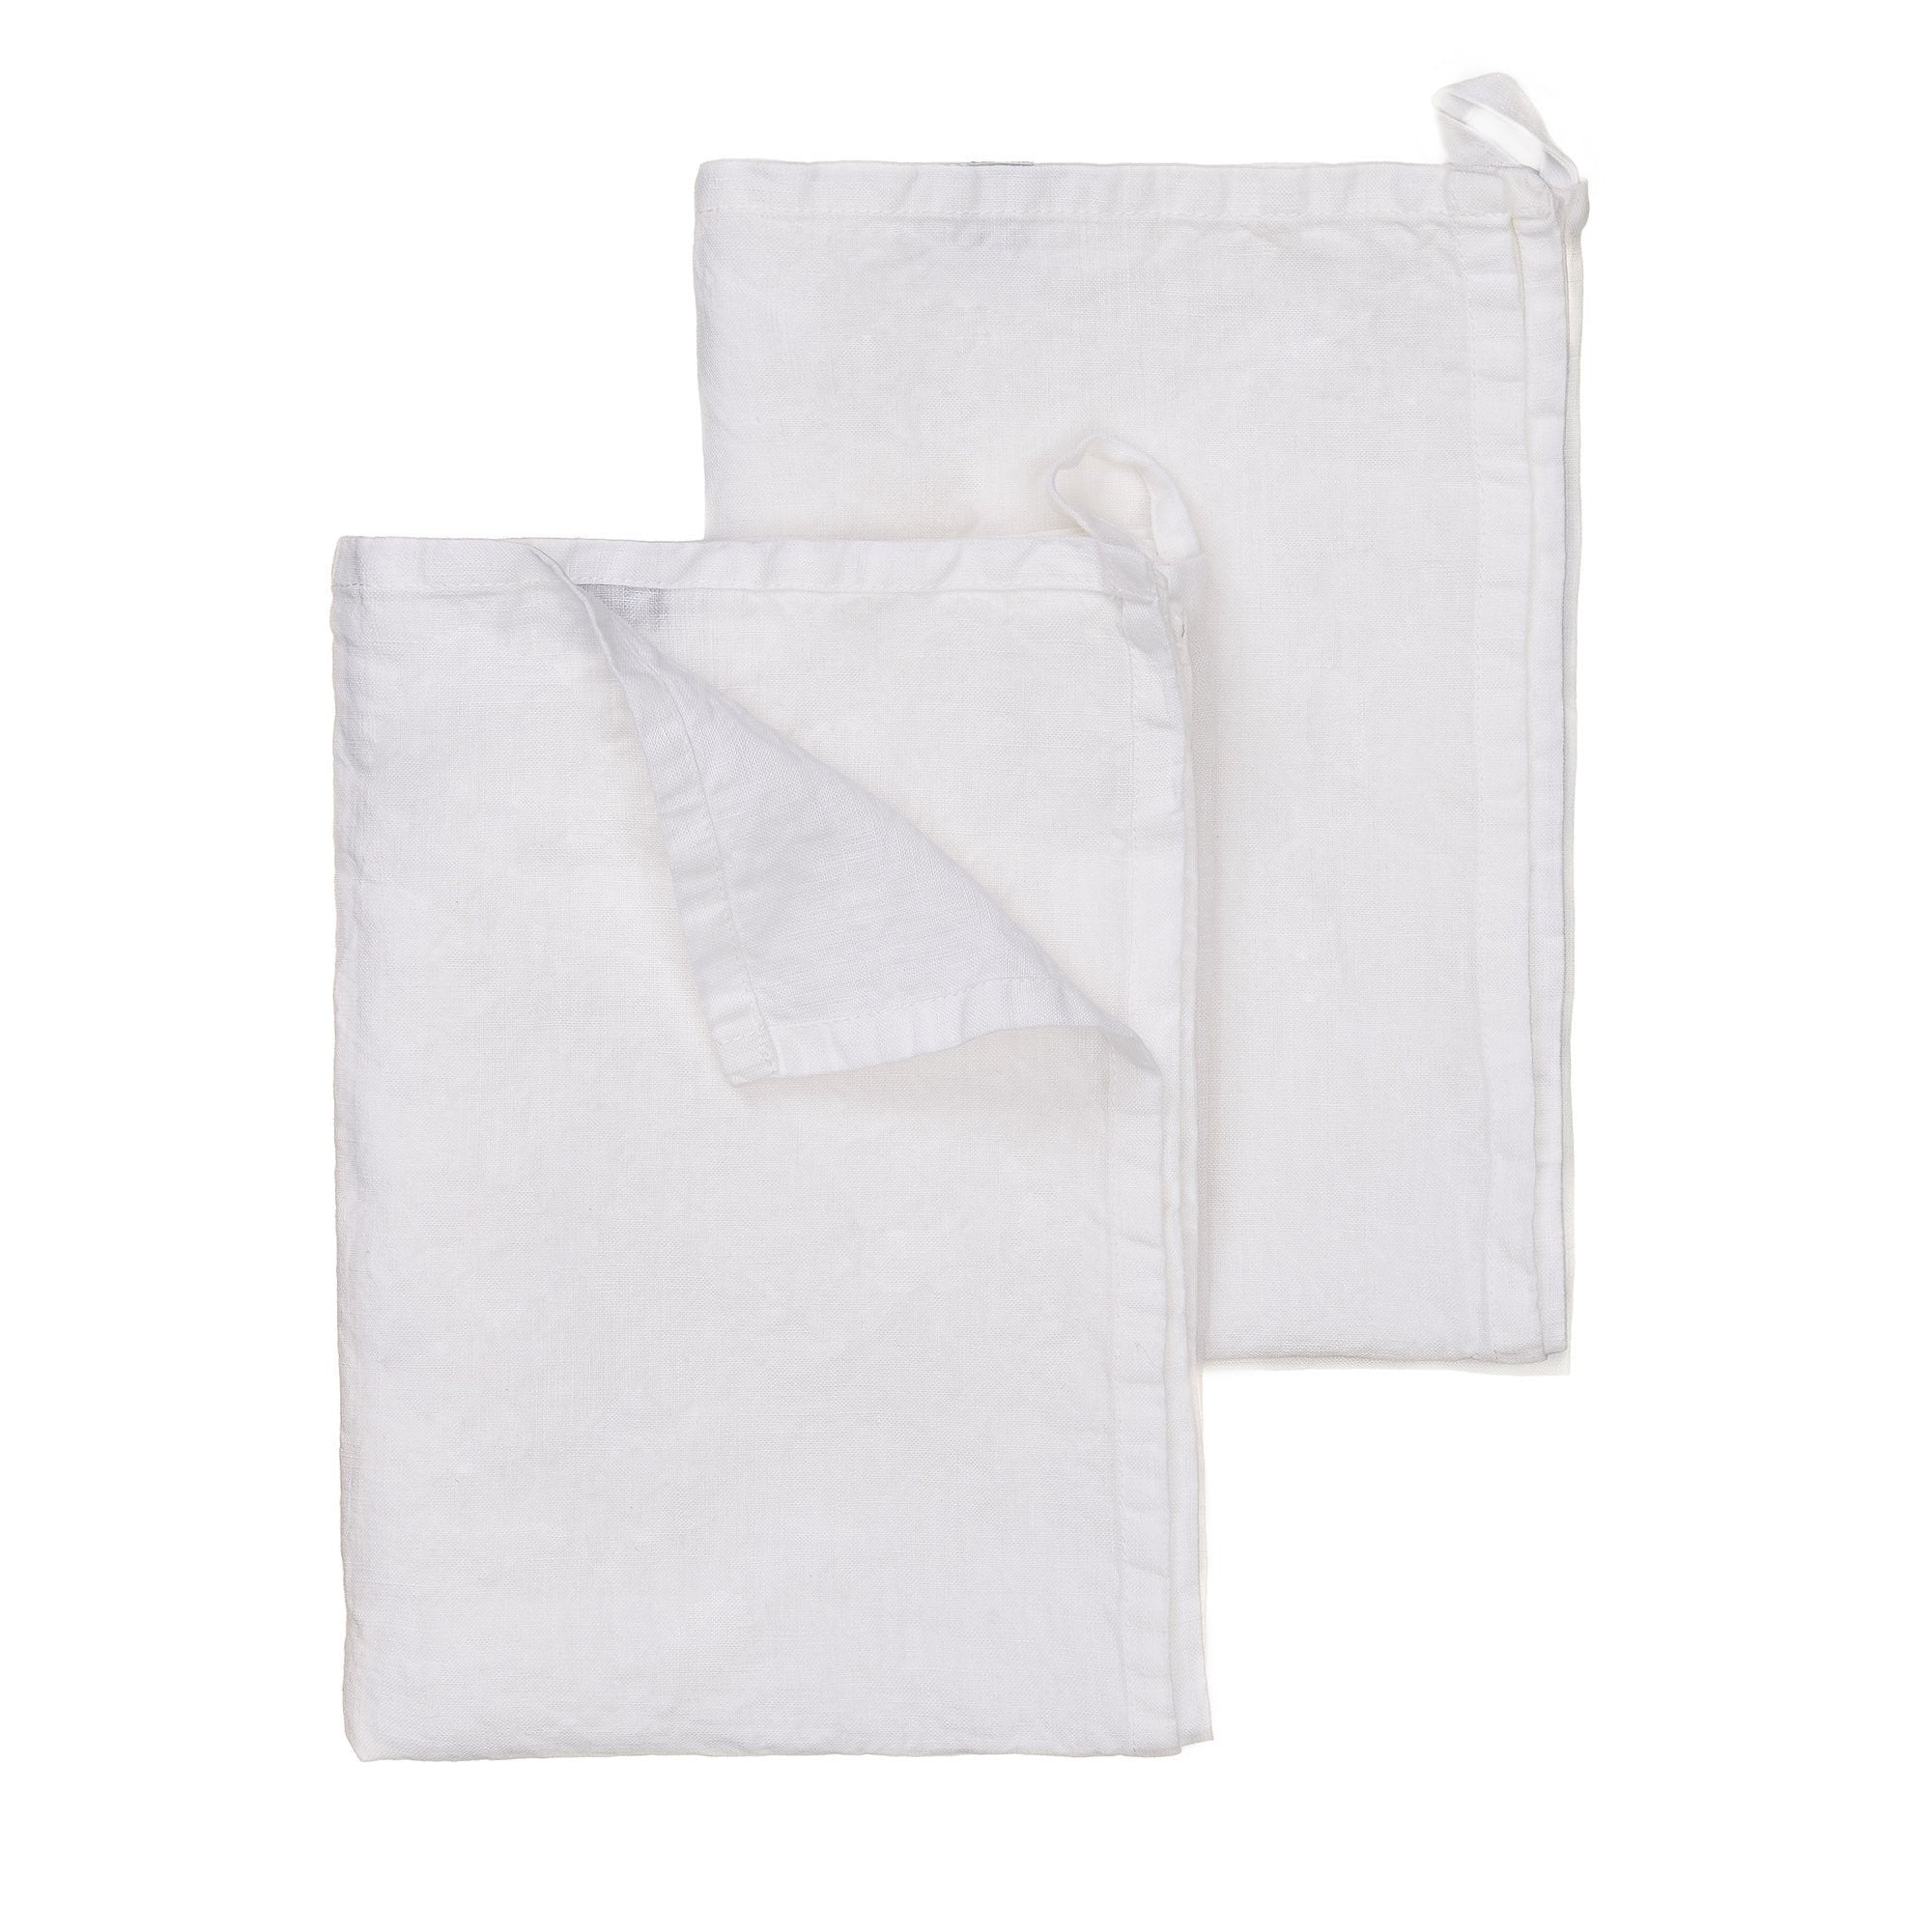 Miral tea towel, white, 100% linen